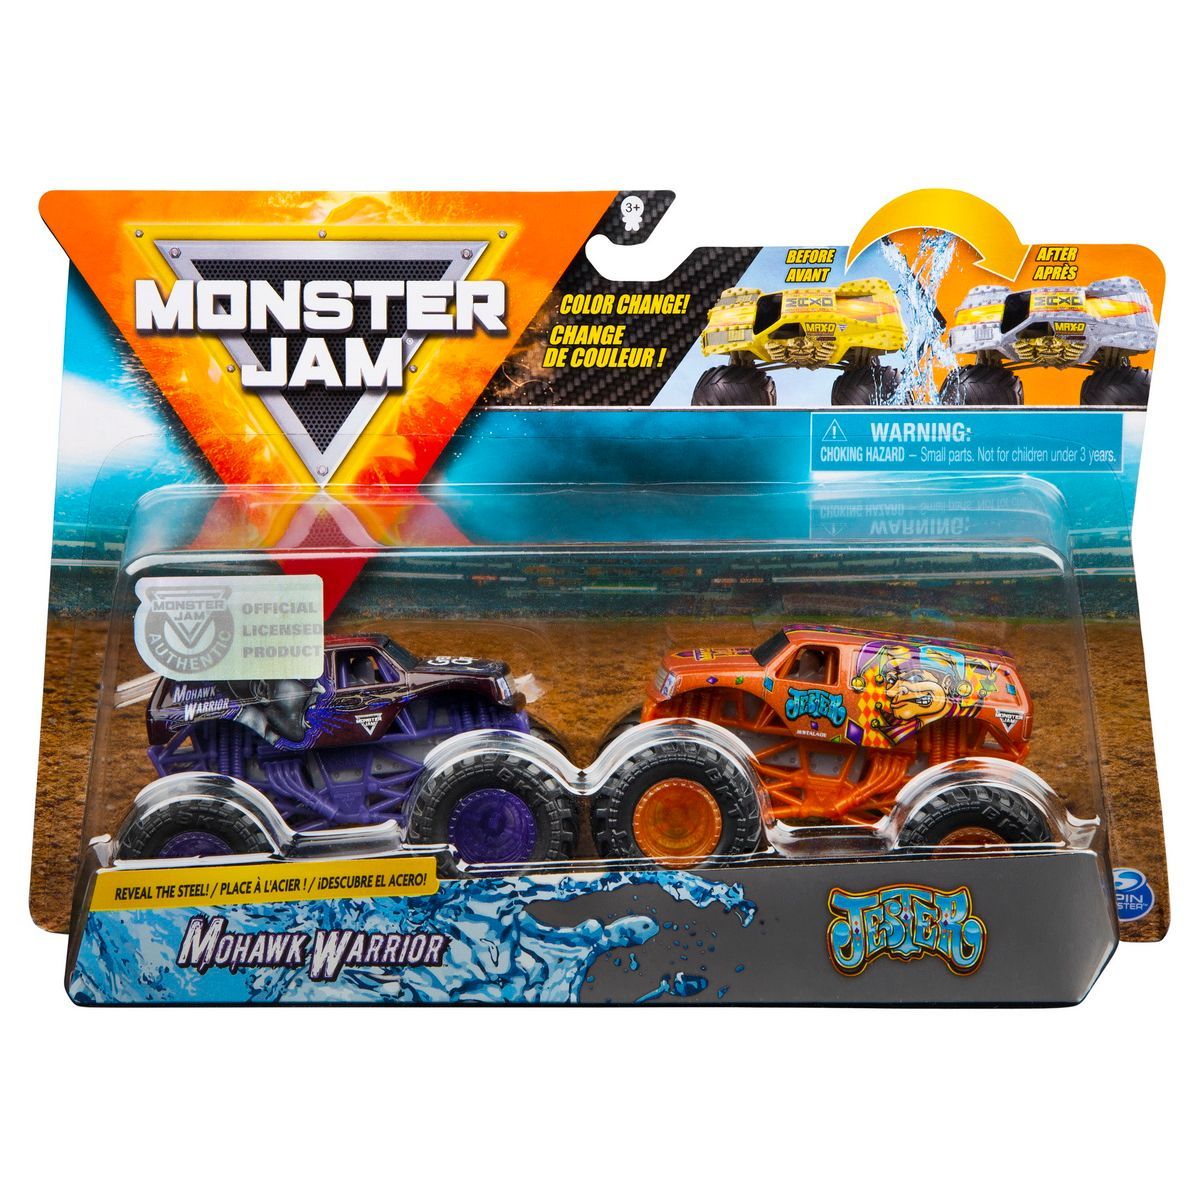 Set 2 masini Monster Jam, Scara 1:64, Mohawk Warrior si Jester